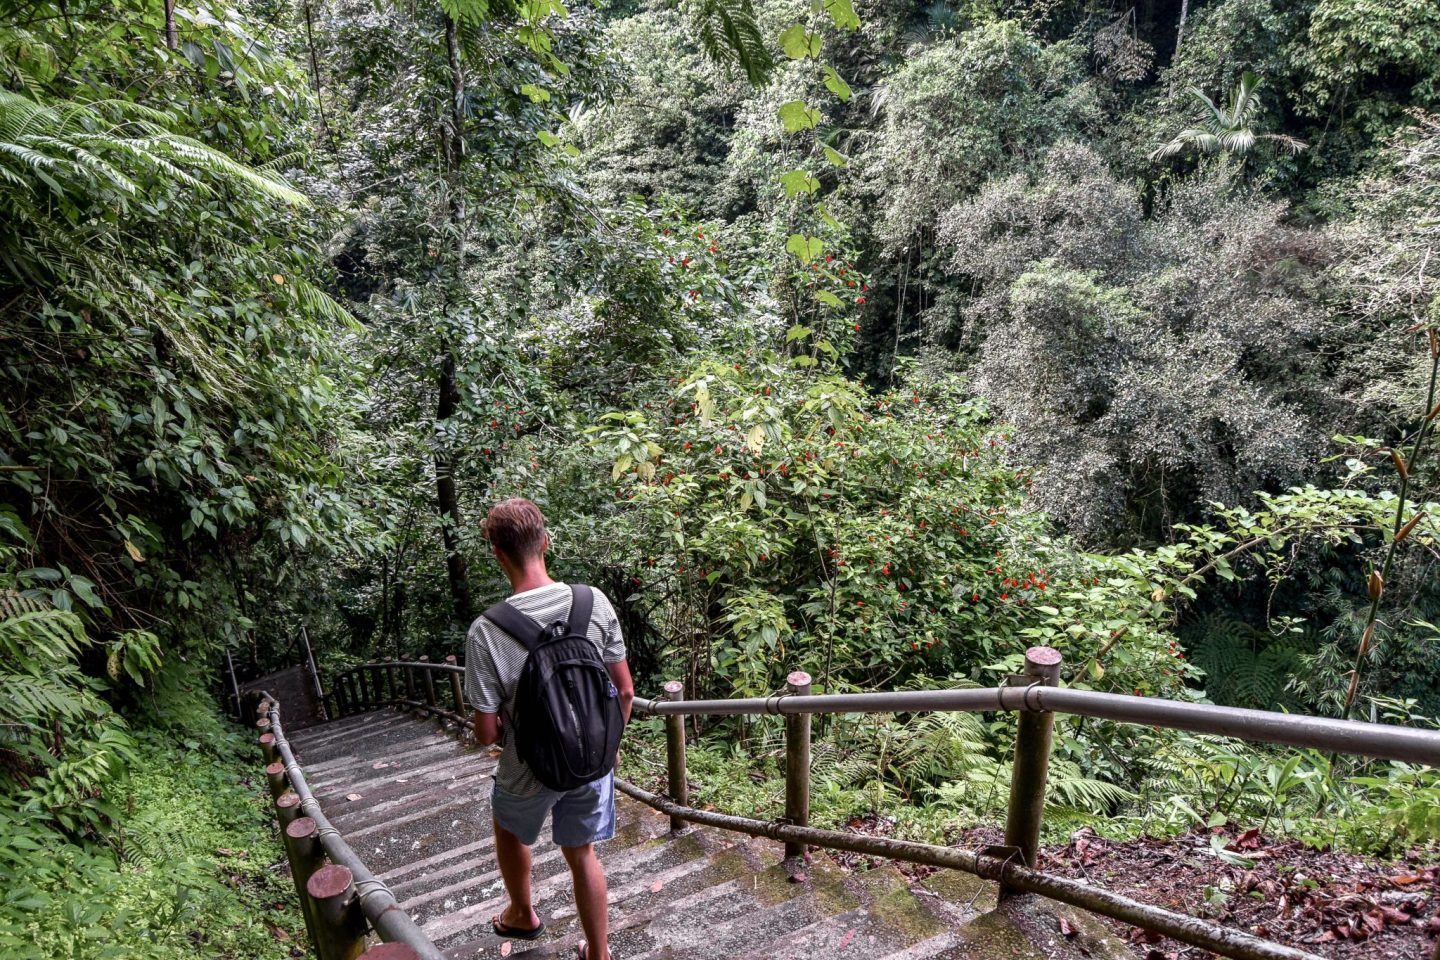 Wanderers & Warriors - Charlie & Lauren UK Travel Couple - Nungnung Waterfall Bali - A Complete Guide - Bali Waterfalls - Best Waterfalls In Bali - Waterfalls Near Ubud - The Walk Down To Nungnung Waterfall